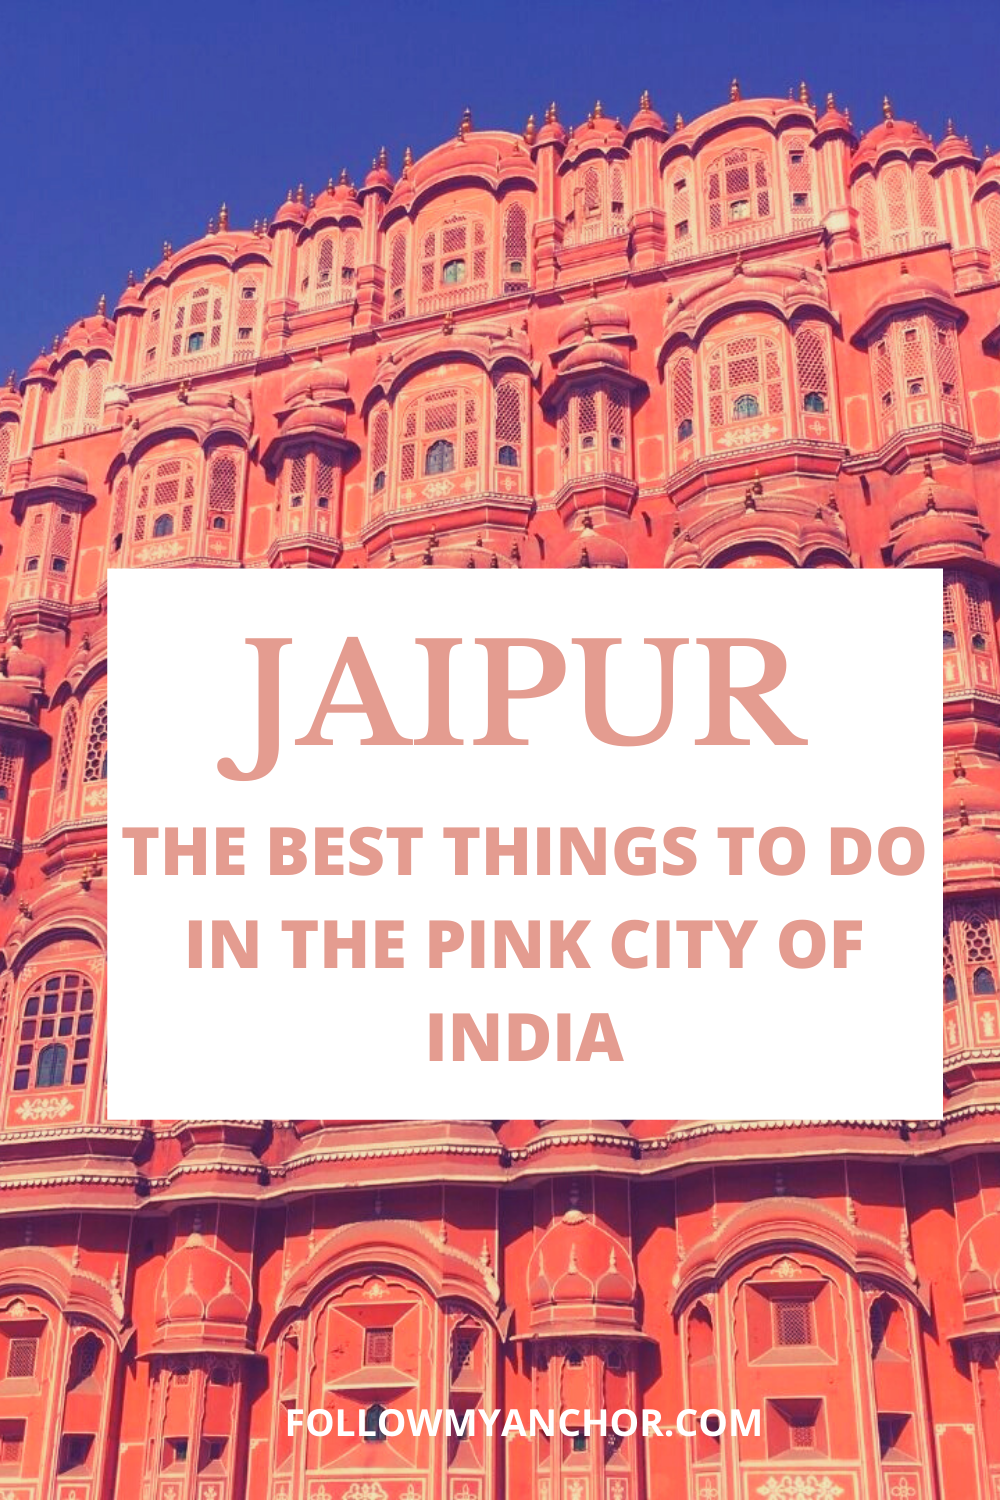 JAIPUR: THE BEST THINGS TO DO IN THE PINK CITY OF INDIA